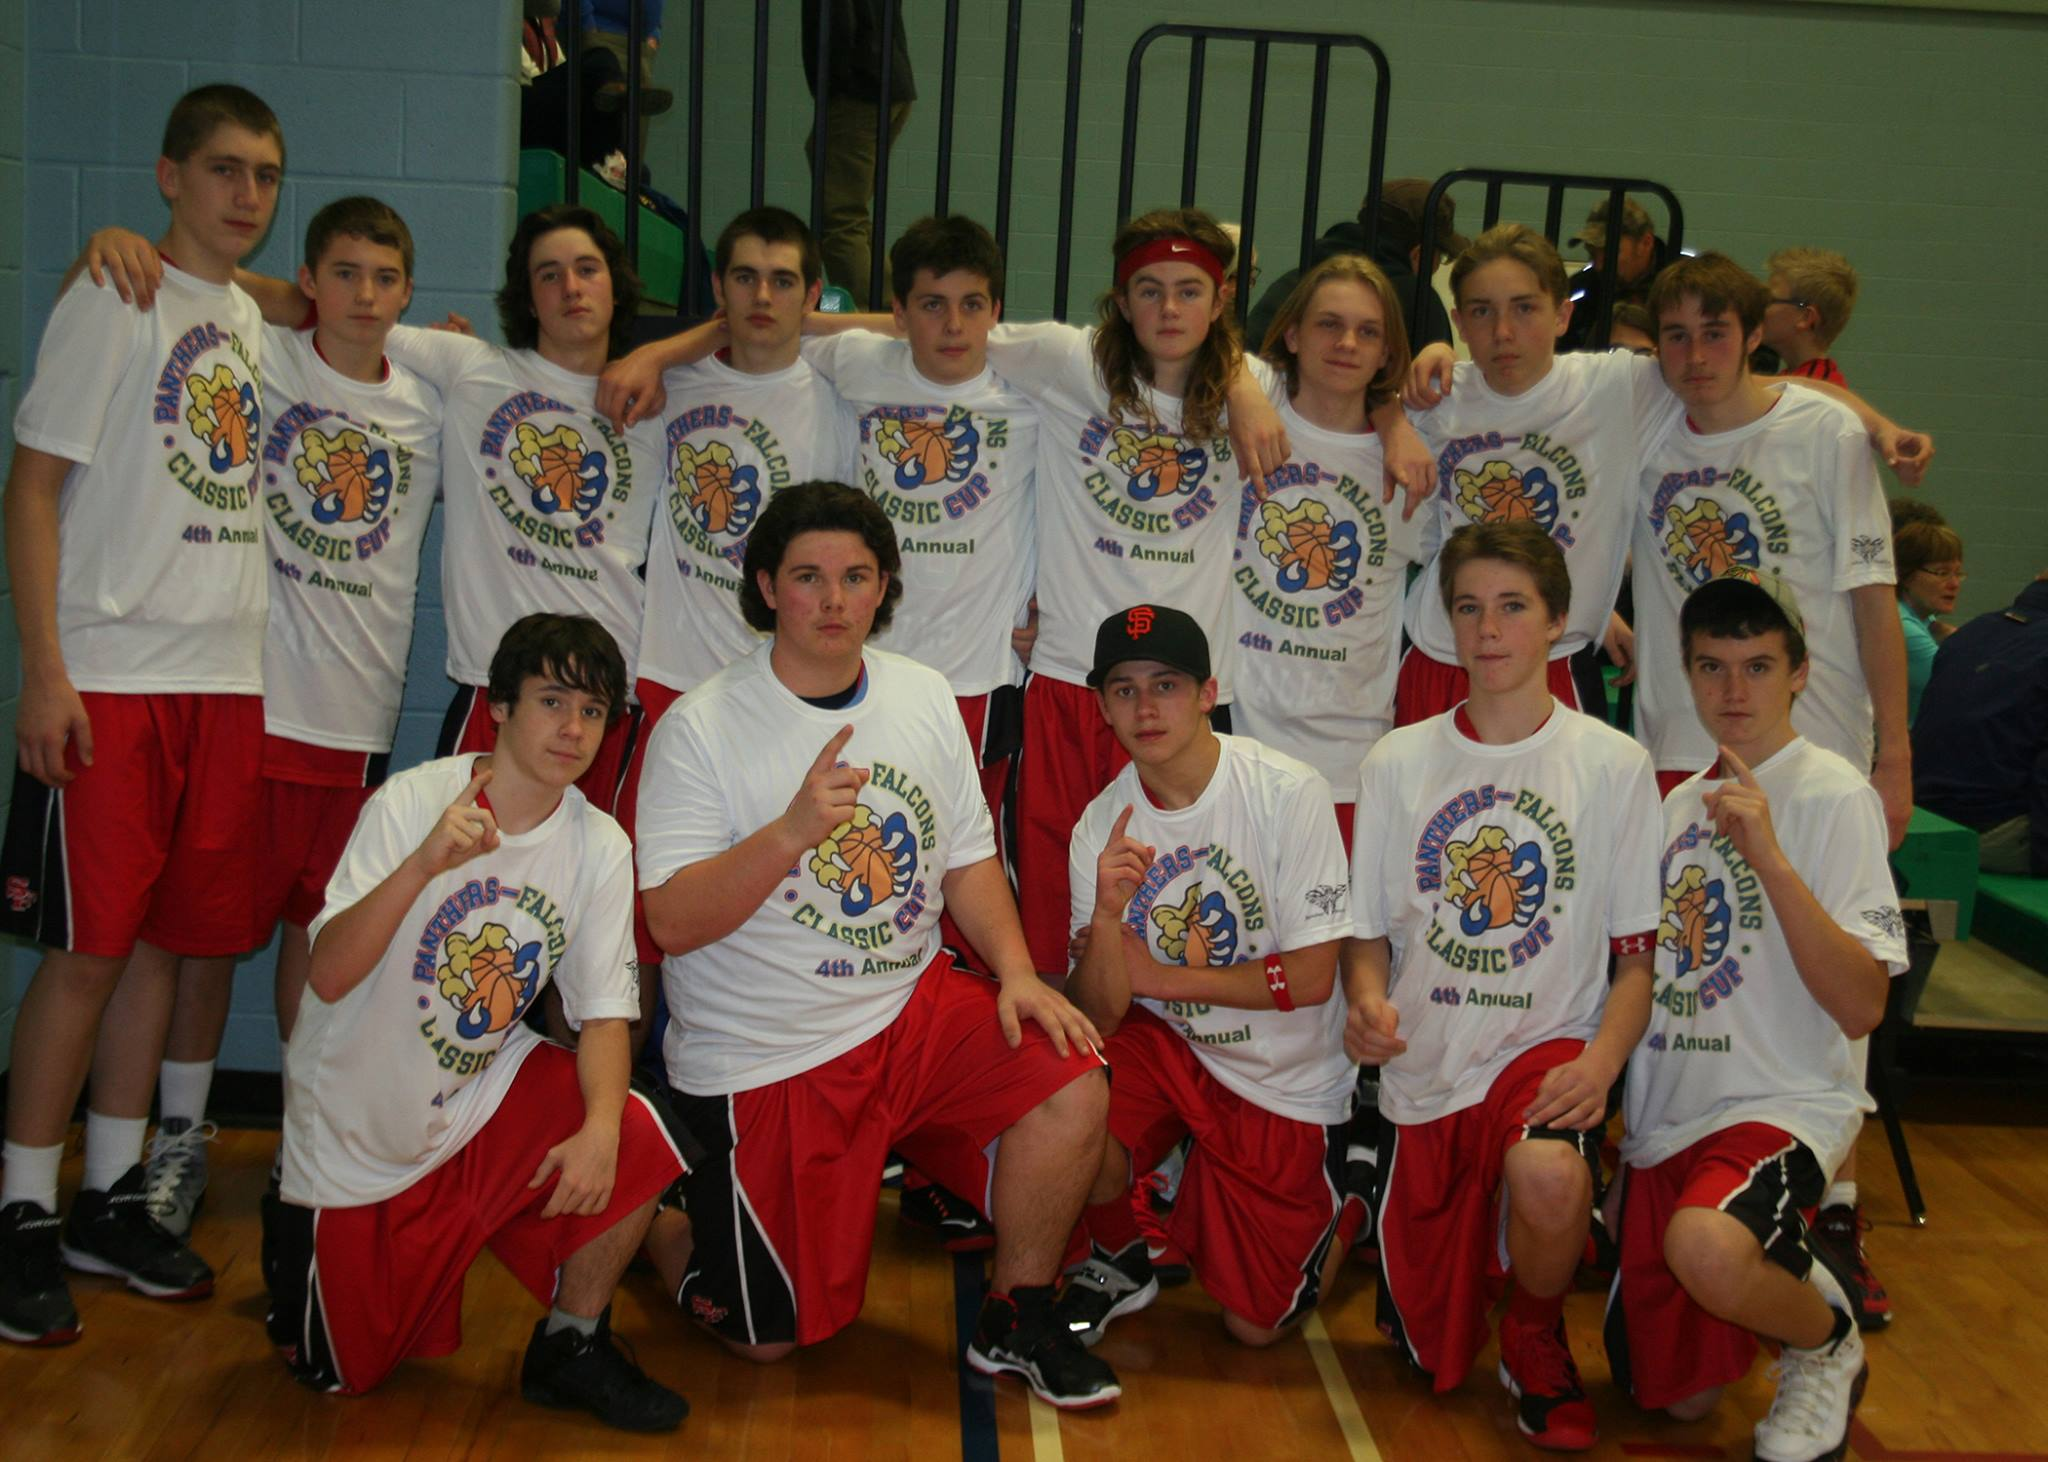 The Junior Boys after Defeating Holy Trinity in Panthers-Falcons Tournament Championship